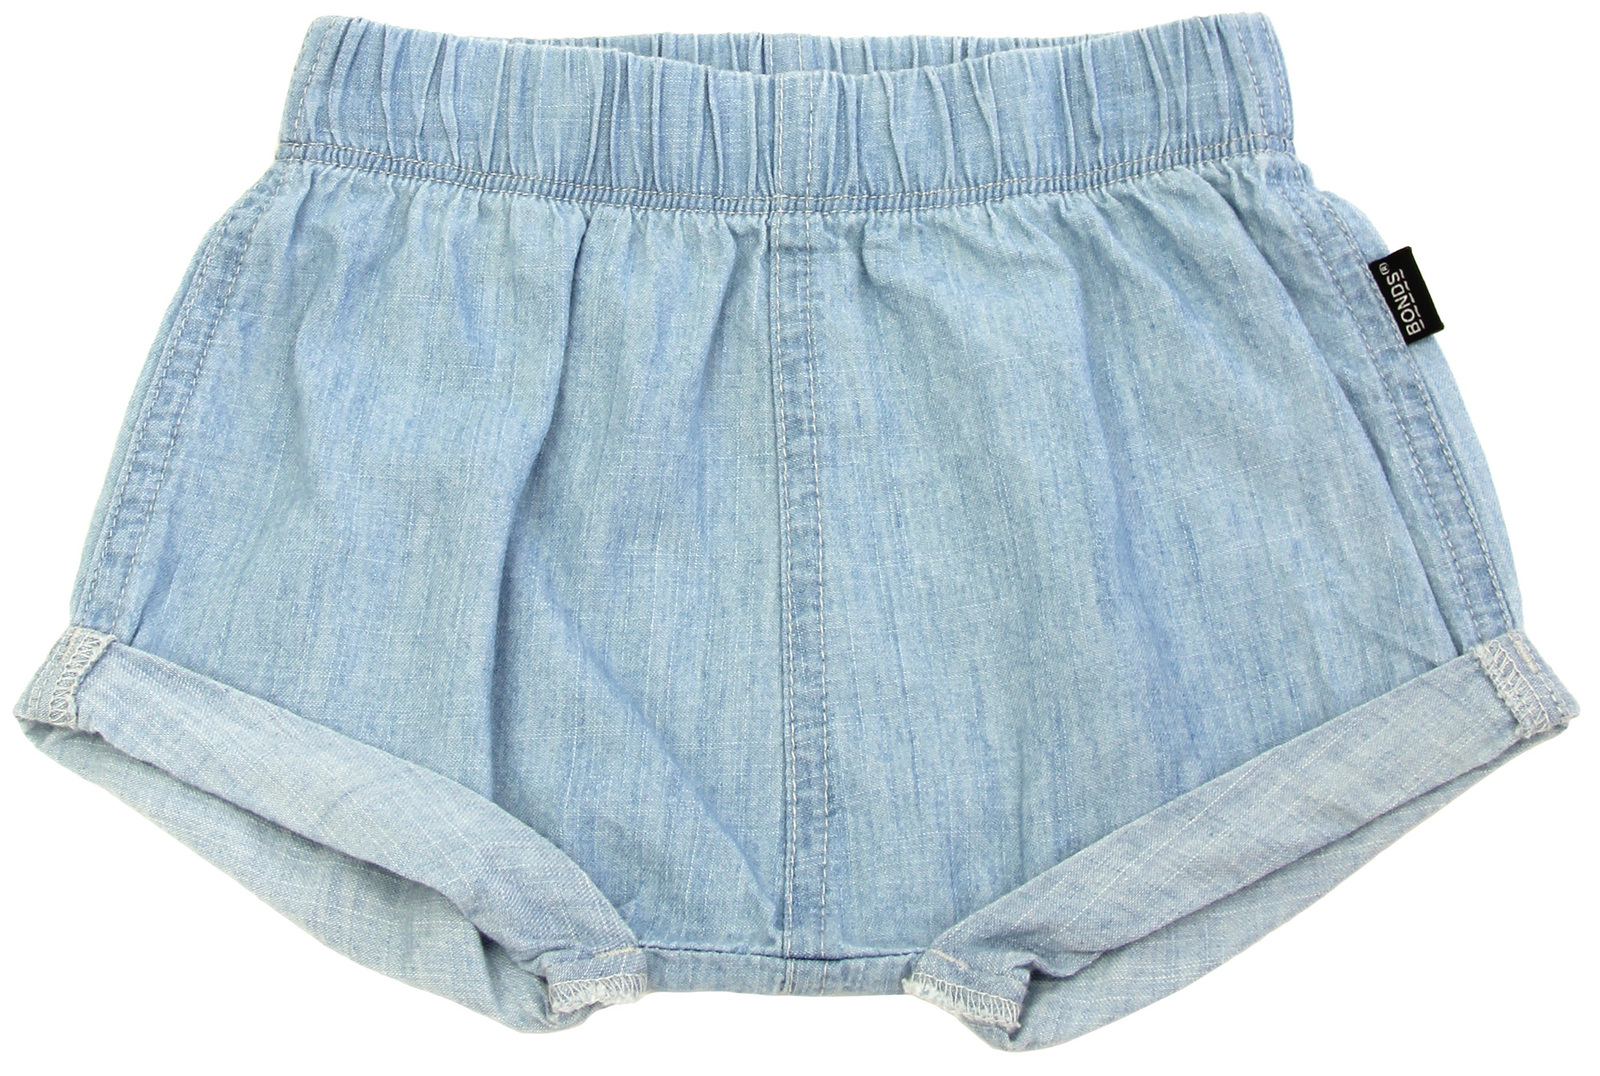 Bonds Chambray Shorts - Summer Blue (18-24 Months) image